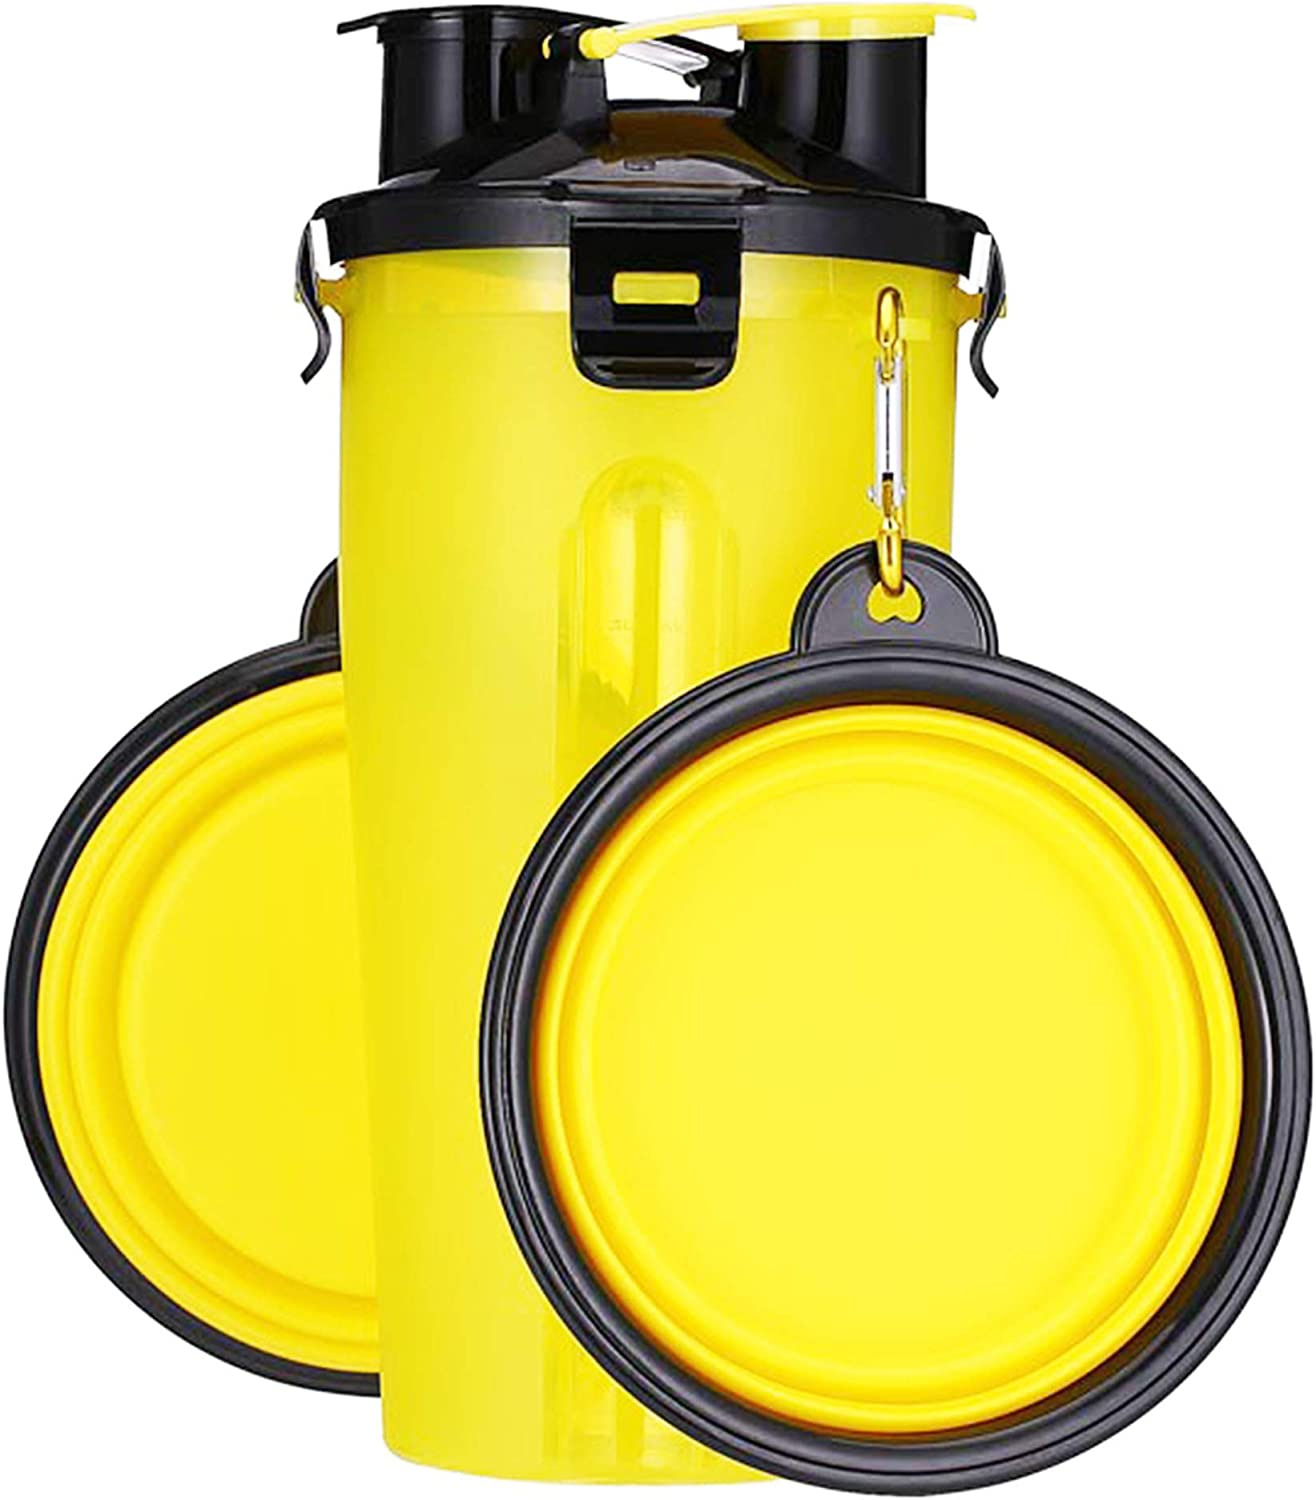 UPSKY Dog Water Bottle Dog Bowls for Traveling Pet Food Container 2-in-1 with Collapsible Dog Bowls, Outdoor Dog Water Bowls for Walking Hiking Travelling … (Yellow)